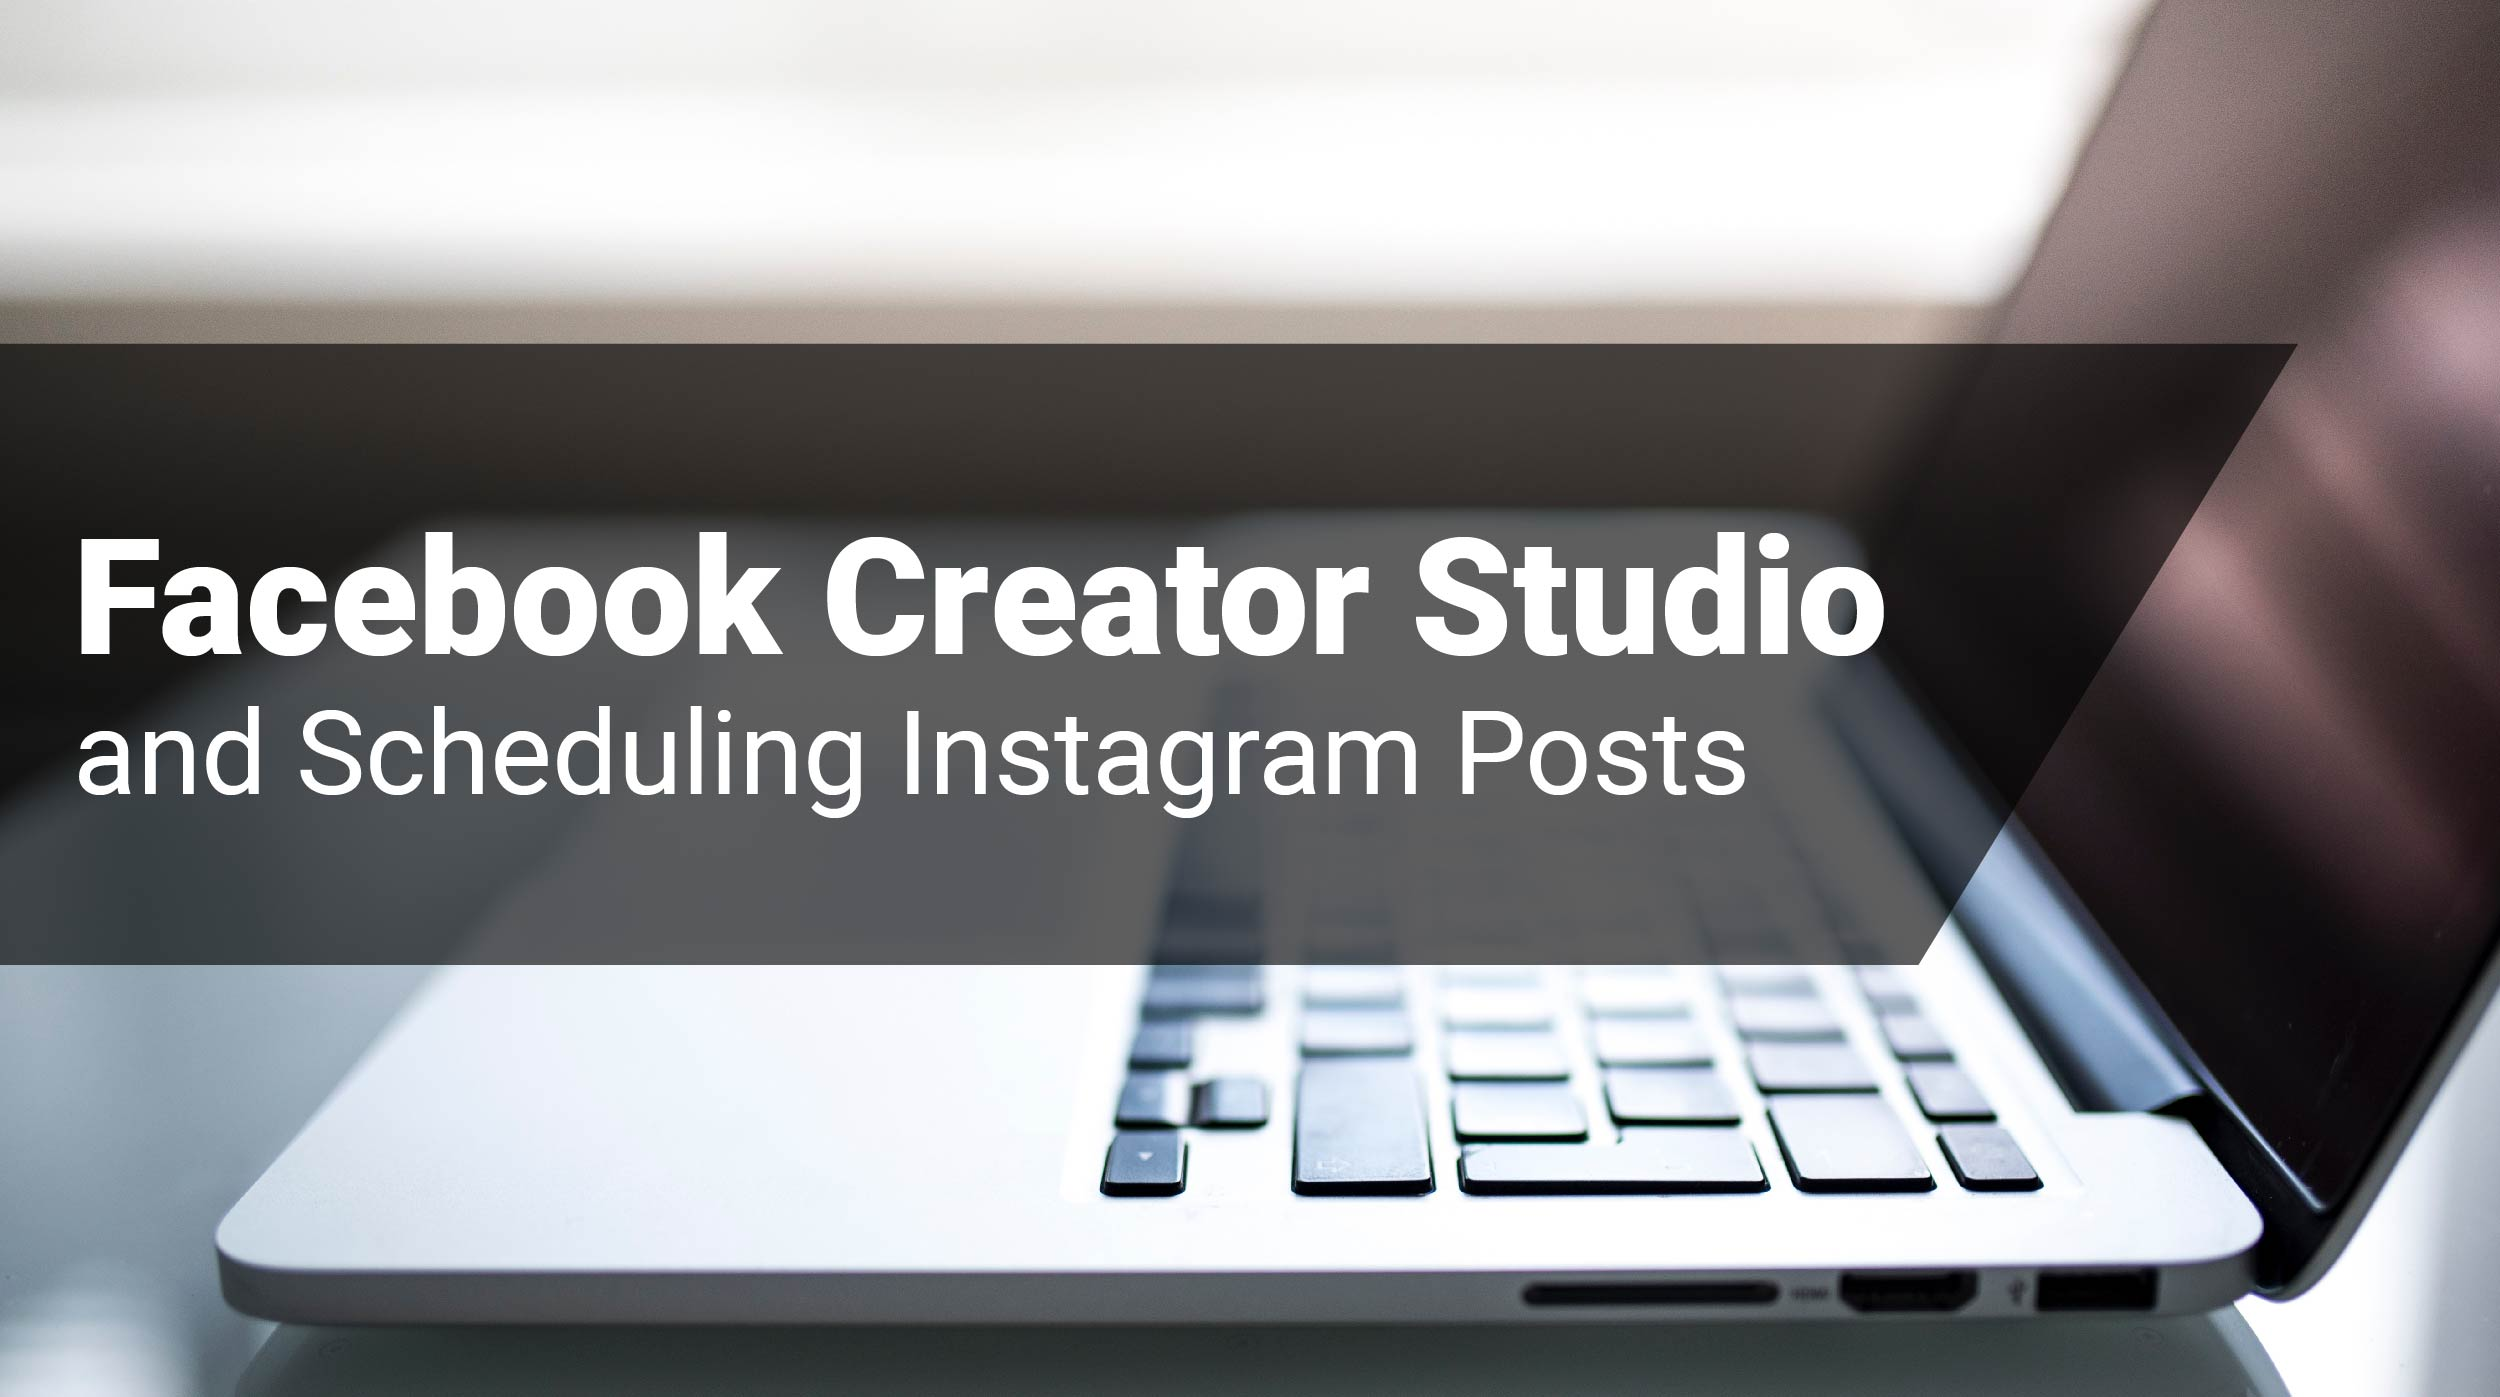 Facebook Creator Studio and Scheduling Instagram Posts